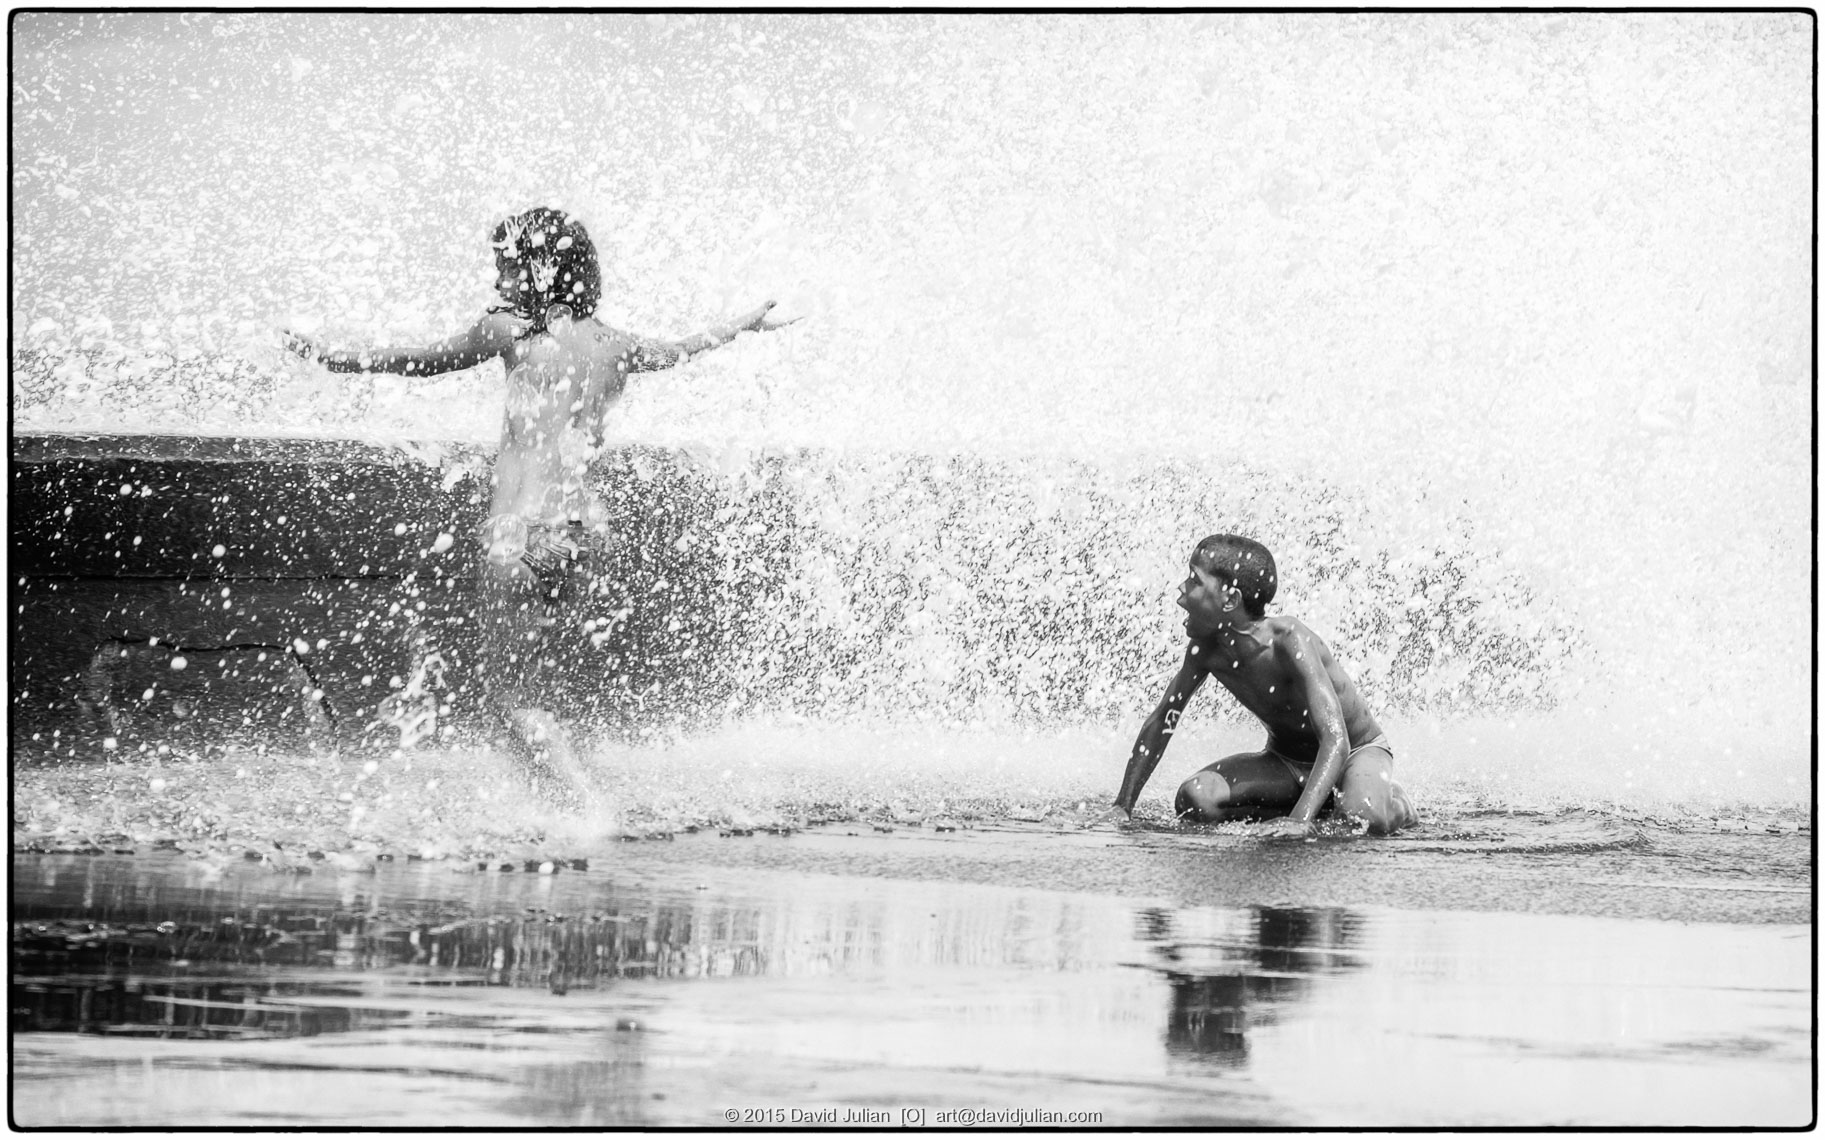 CUBA, Havana, Malecon kids in spray